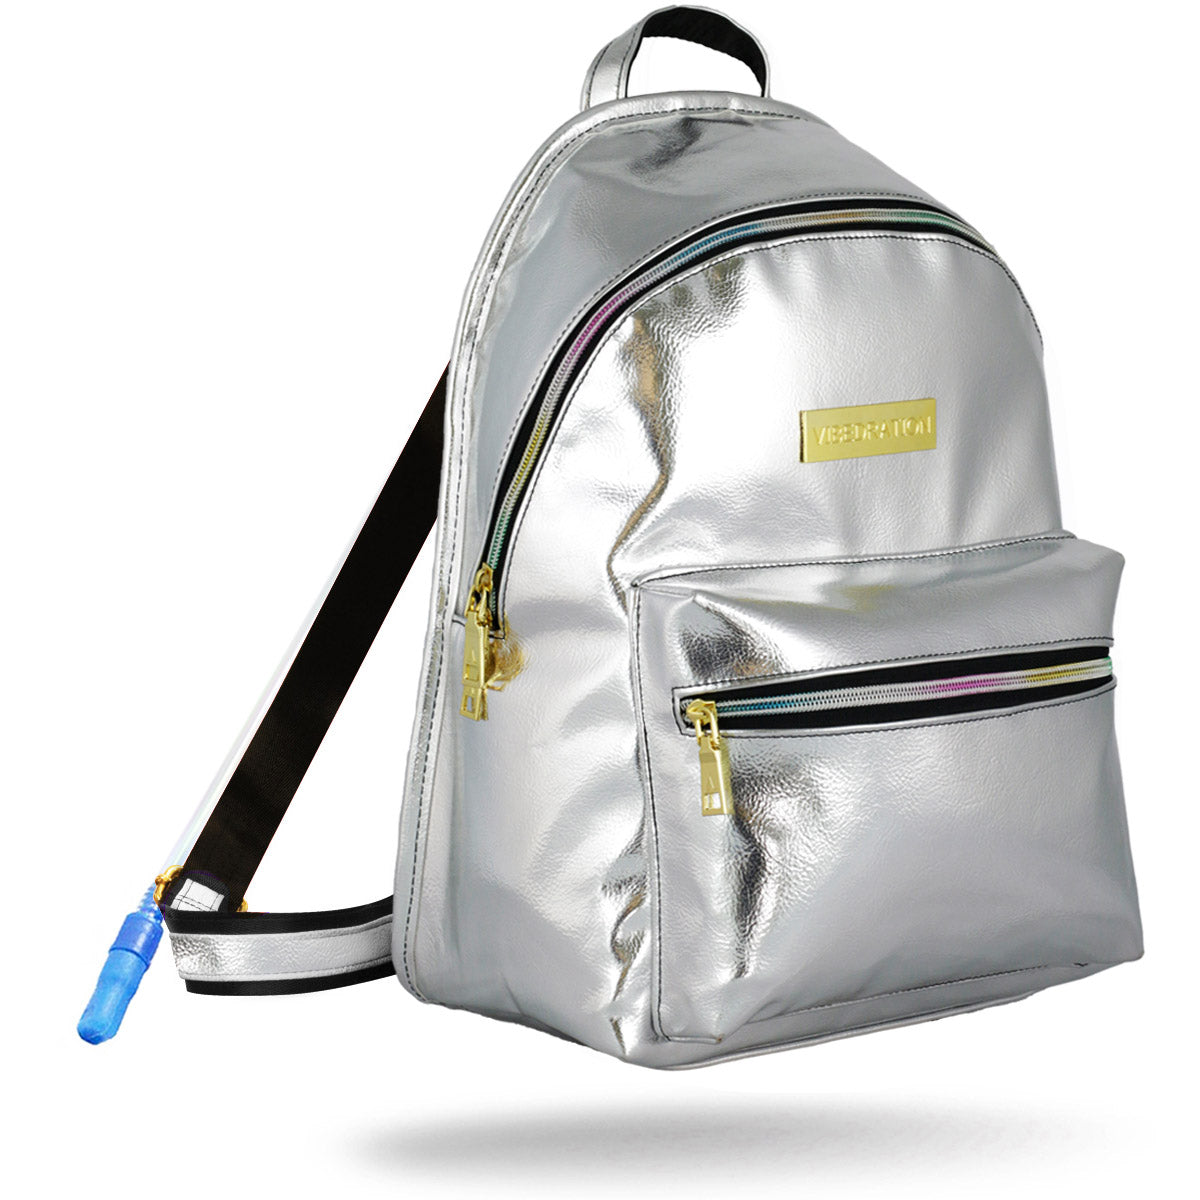 Platinum silver leather hydration pack with rainbow zippers.